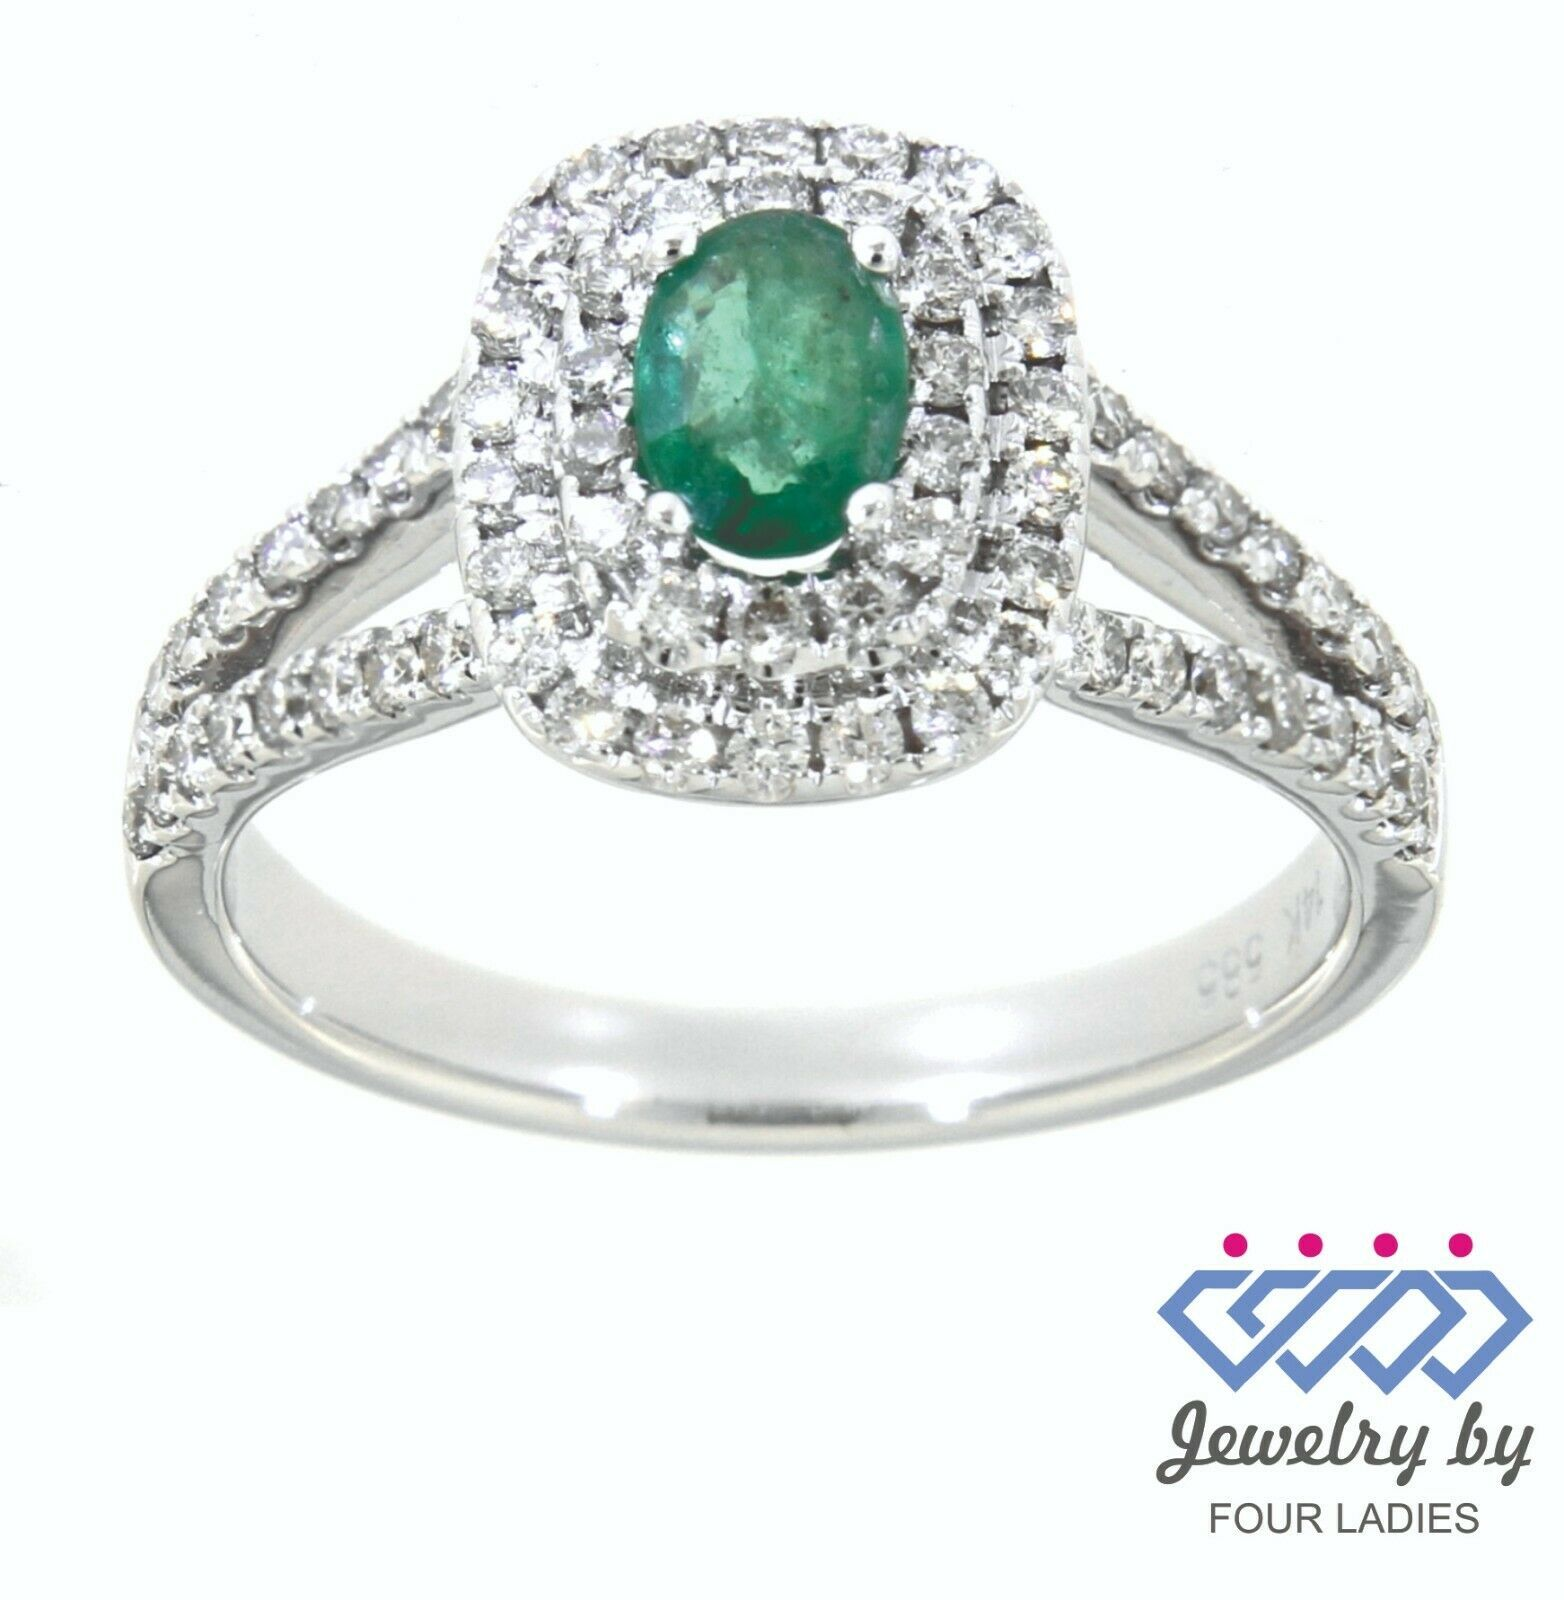 Primary image for Emerald Birthstone 14K White Gold 0.36CT Natural Halo Double Diamond Ring